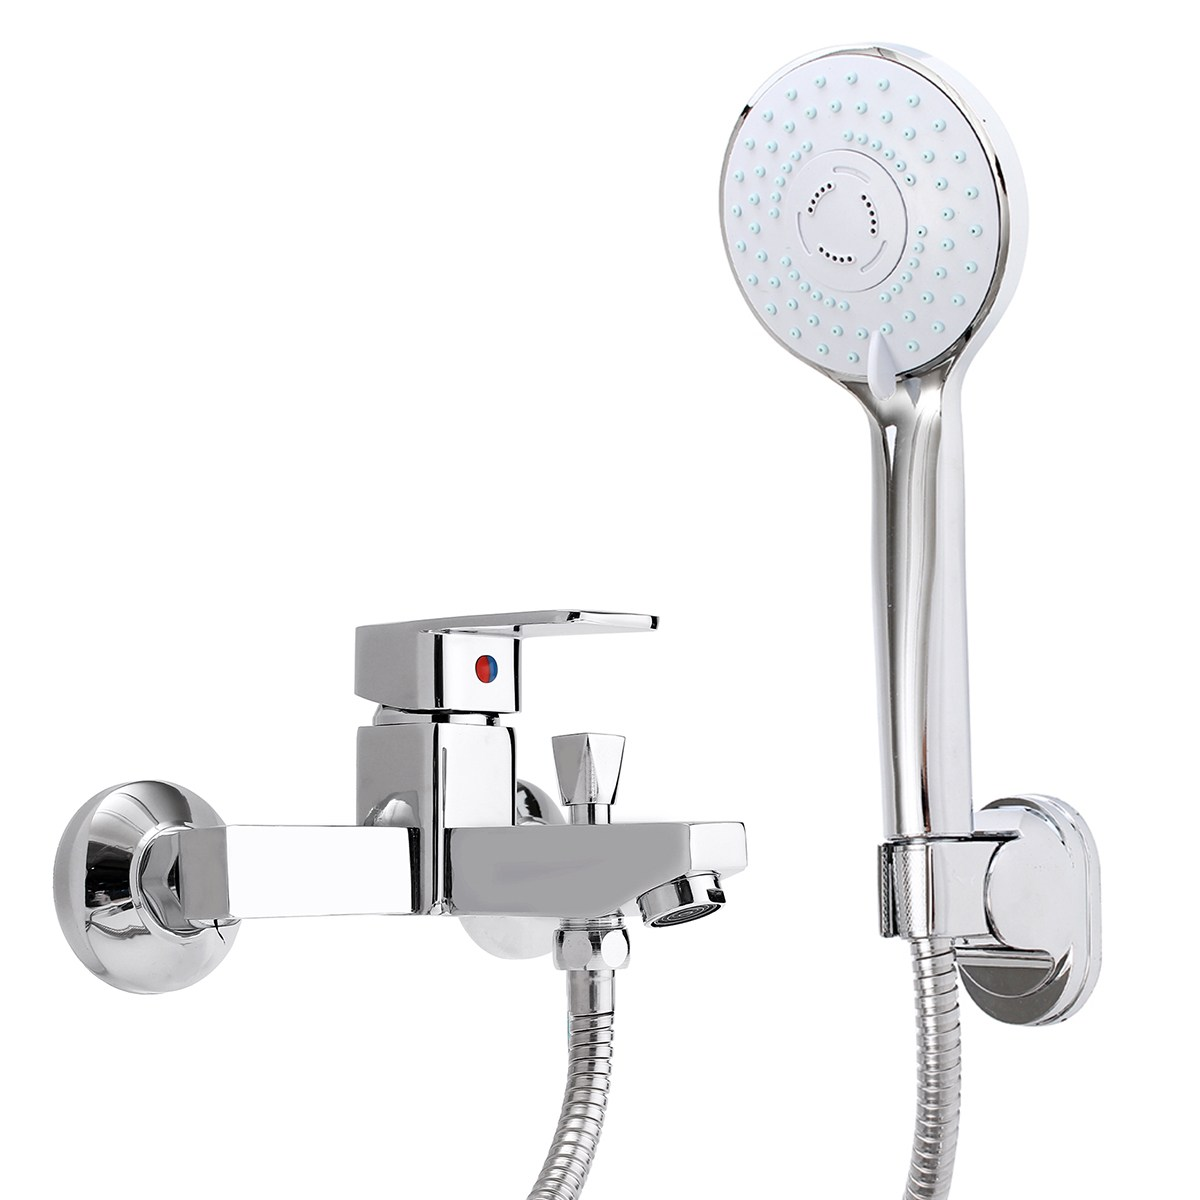 New Brass Bathroom Hot&Cold Shower Sets Mixer Tap Faucet Wall Mounted Bathtub Shower Faucet Taps Kits Hose sognare new wall mounted bathroom bath shower faucet with handheld shower head chrome finish shower faucet set mixer tap d5205